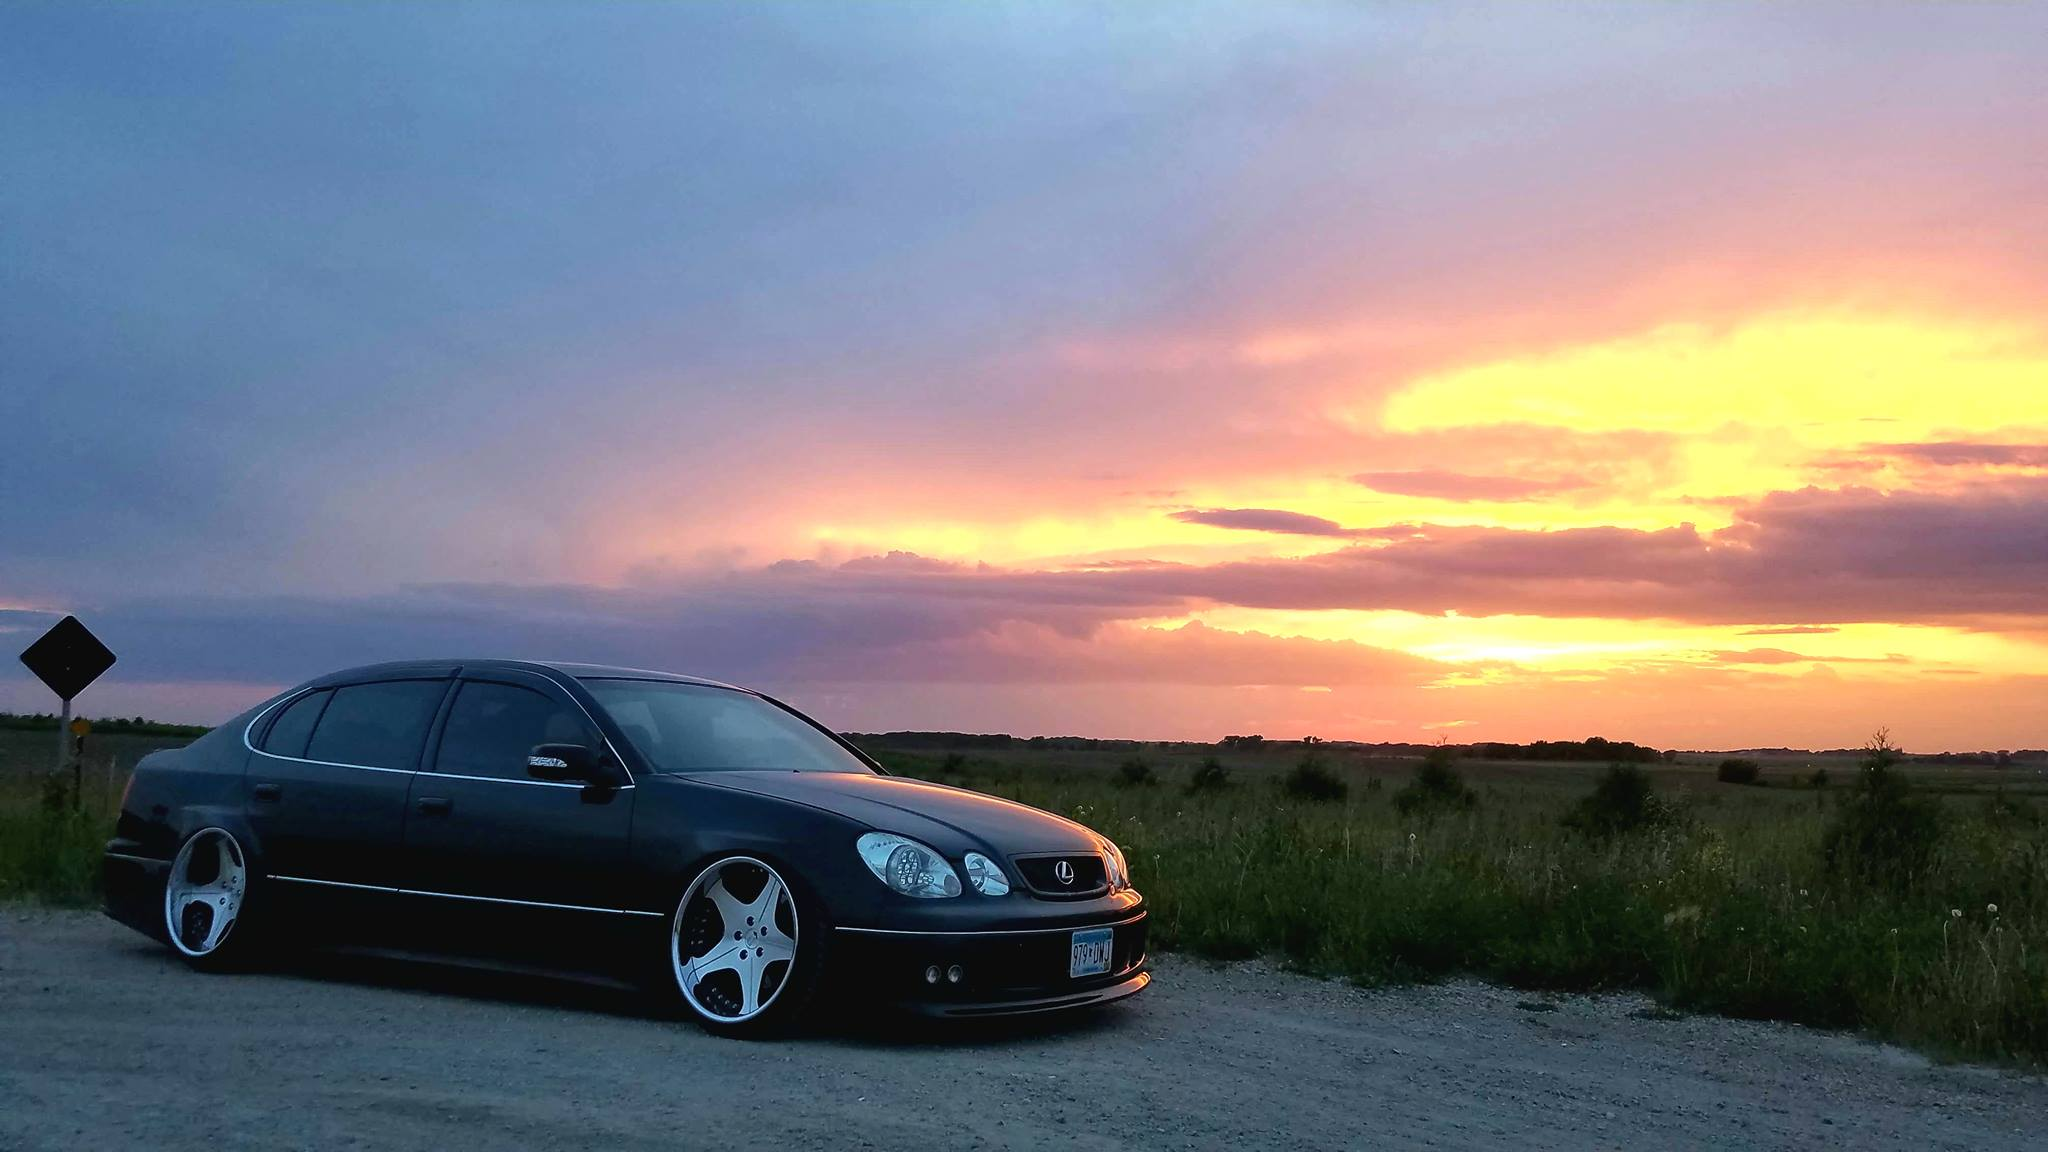 11 Kyle Harty 1999 Lexus gs400 Tuner Battlegrounds